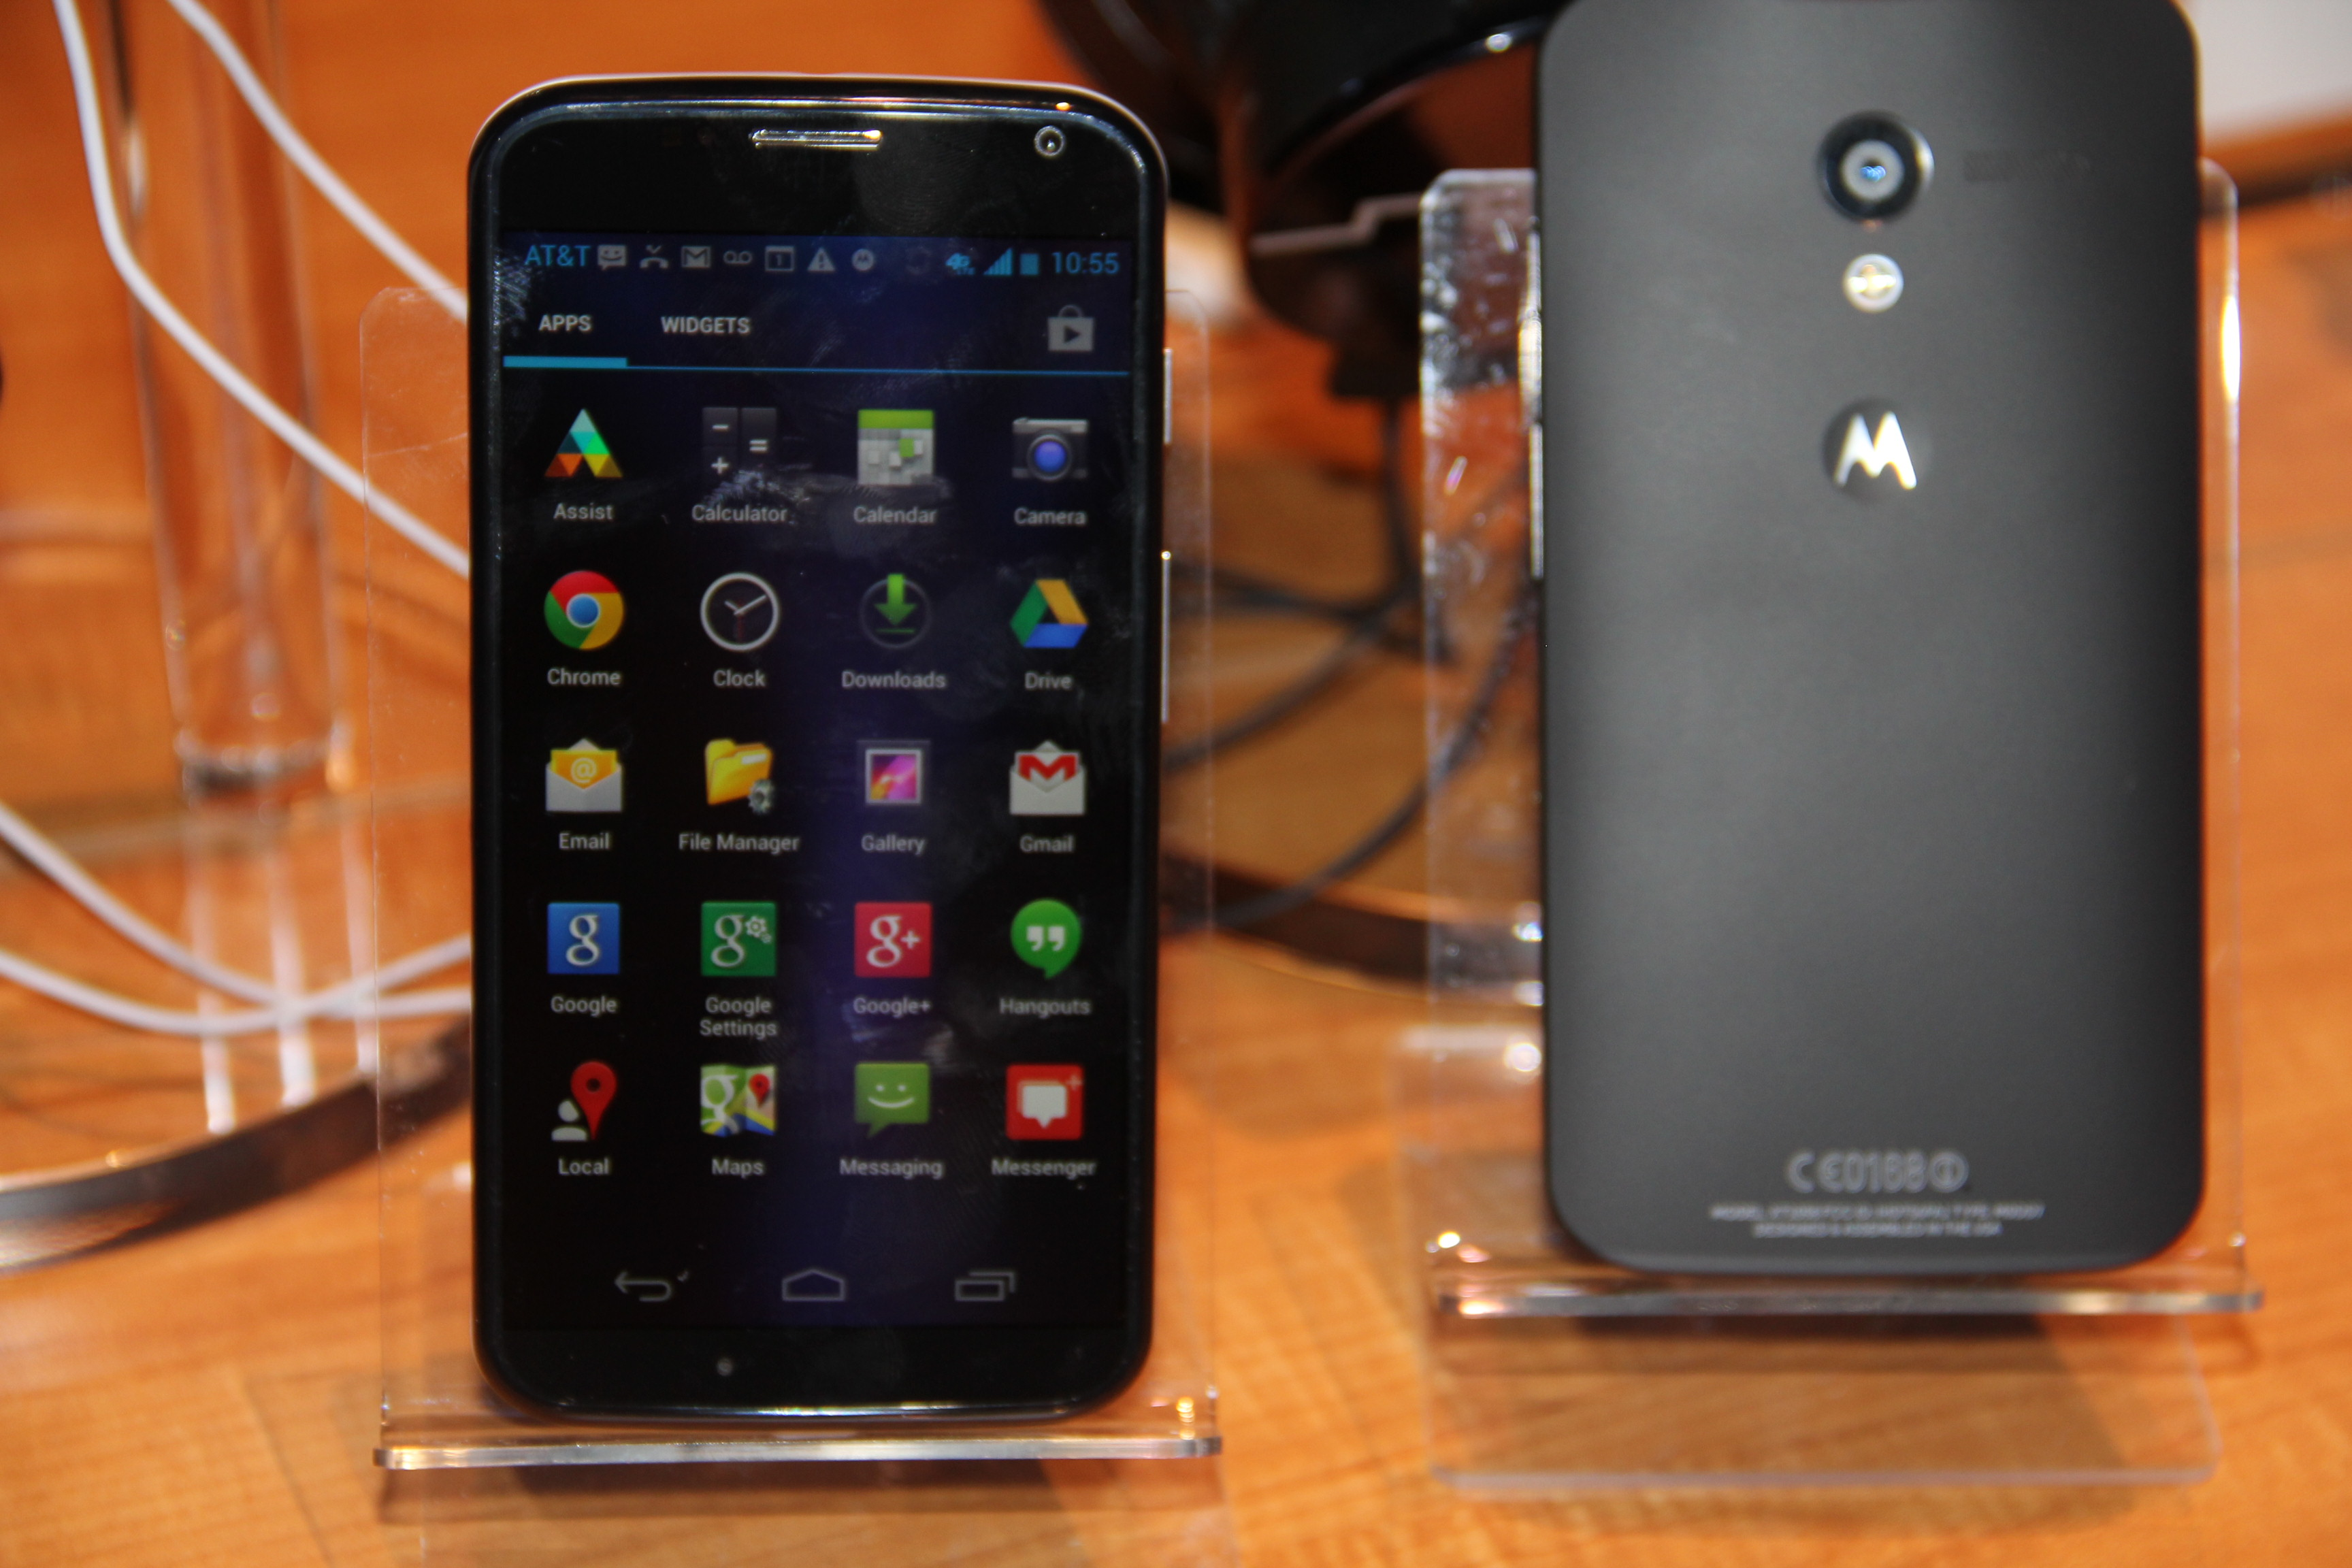 Moto X Stacks Up To The Iphone 5